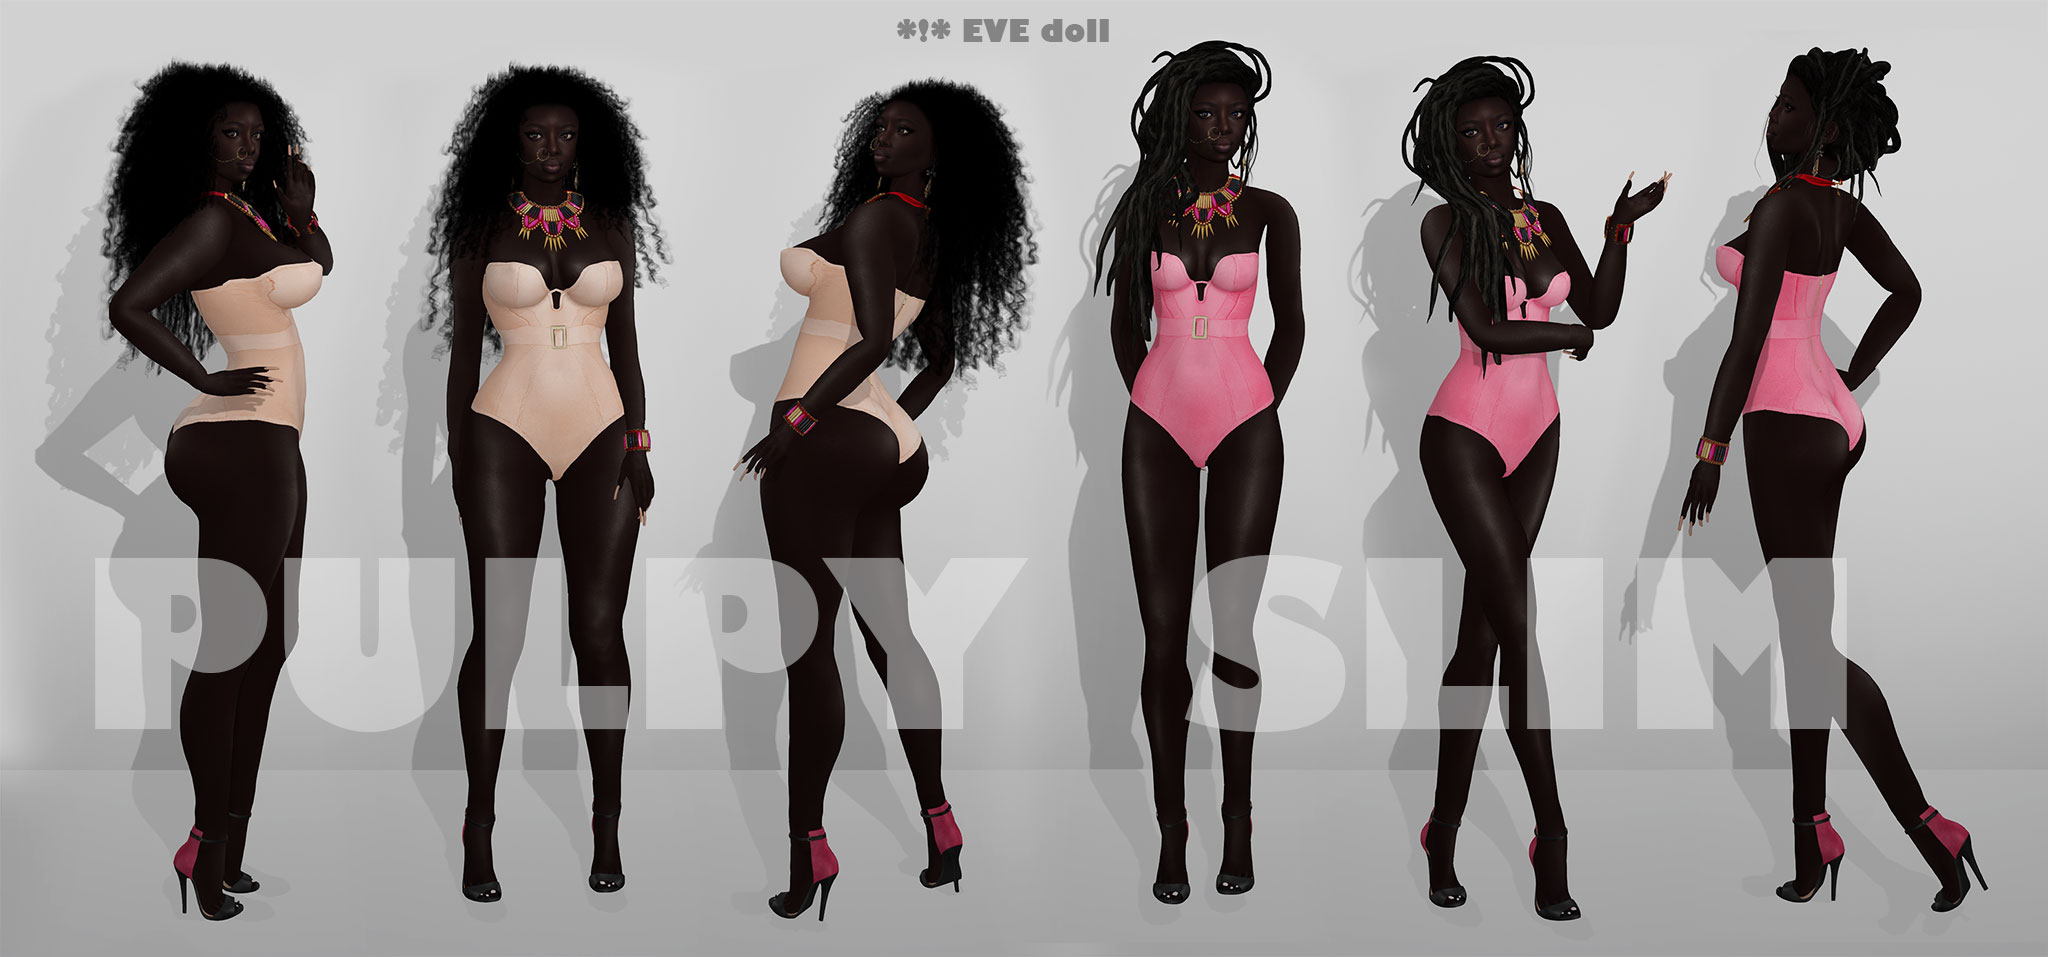 Eve doll pulpy&slim